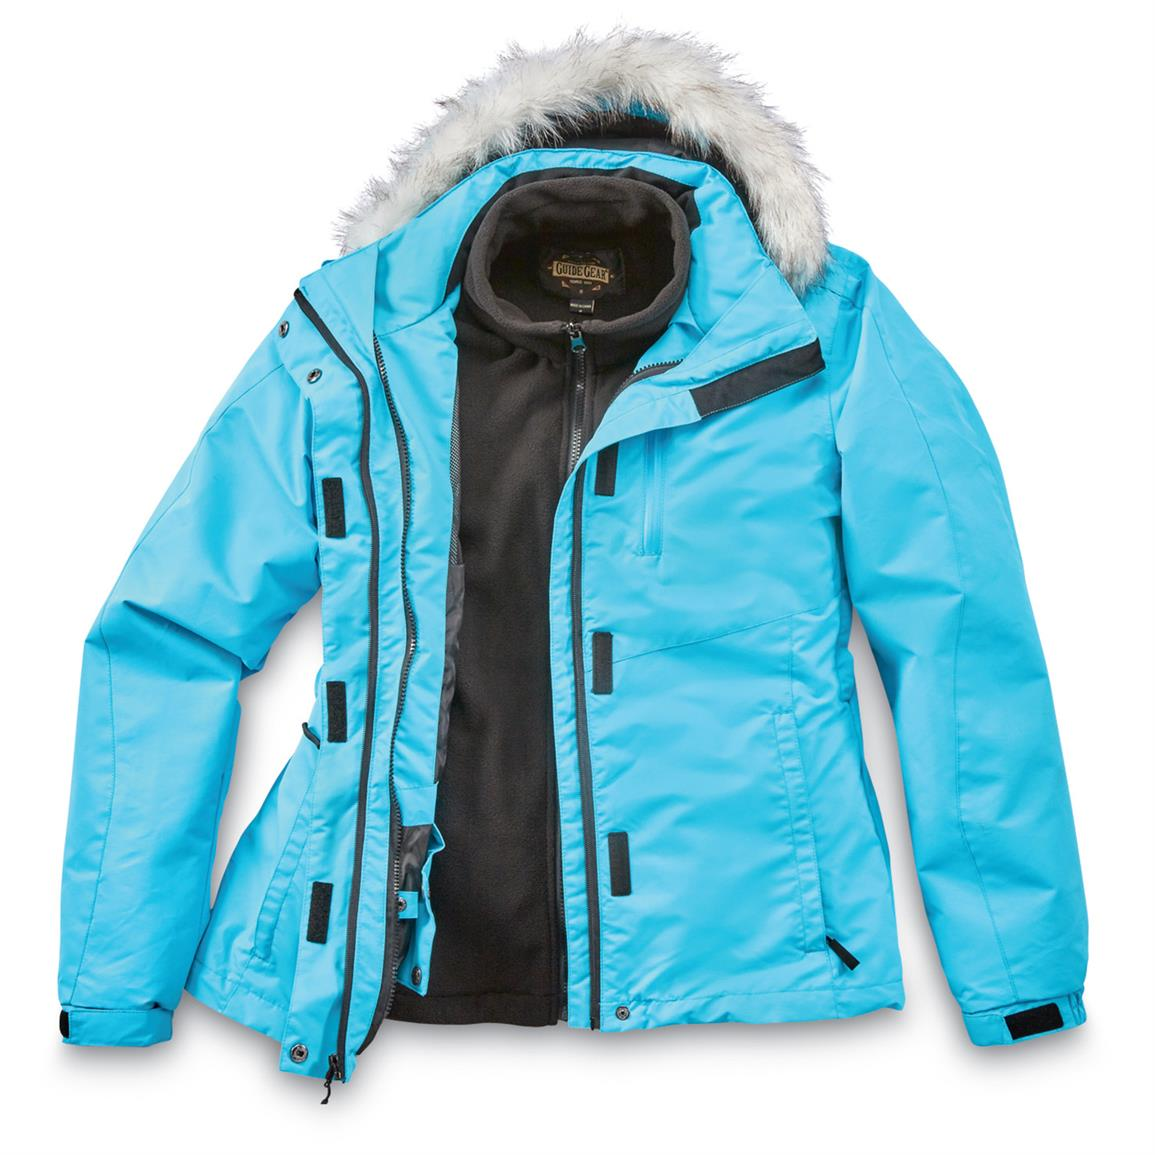 Guide Gear Women's Shasta Jacket, Teal